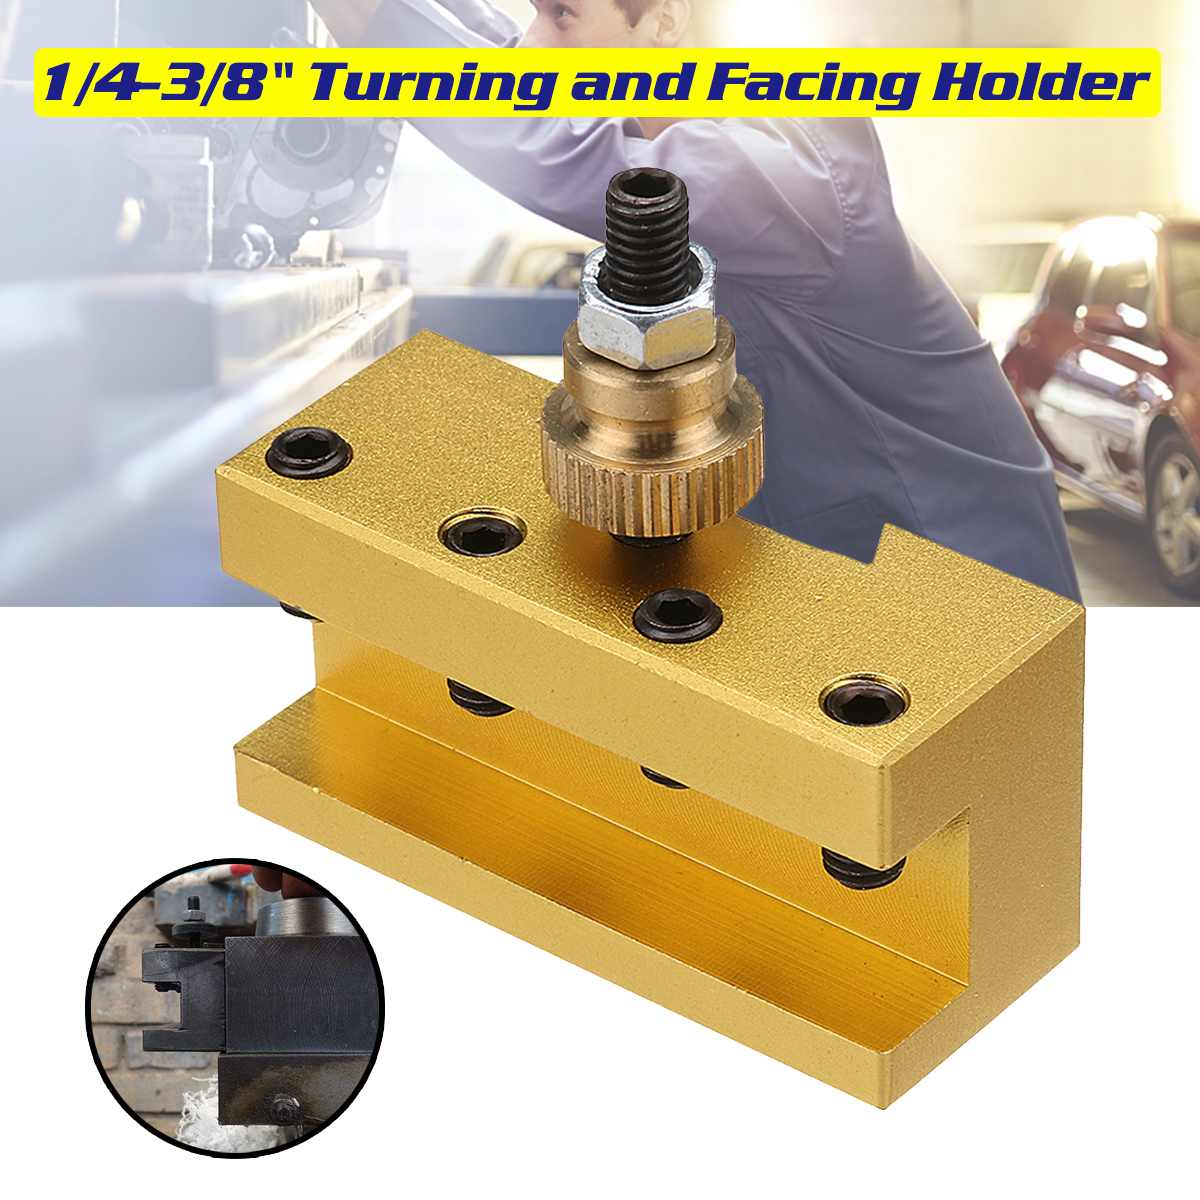 1/4-3/8 Inch 20x25x50mm Lathe Quick Change Tool Post Turning Facing Holder Milling Cut Tool Holder For CCMT TCMT Nilling Insert